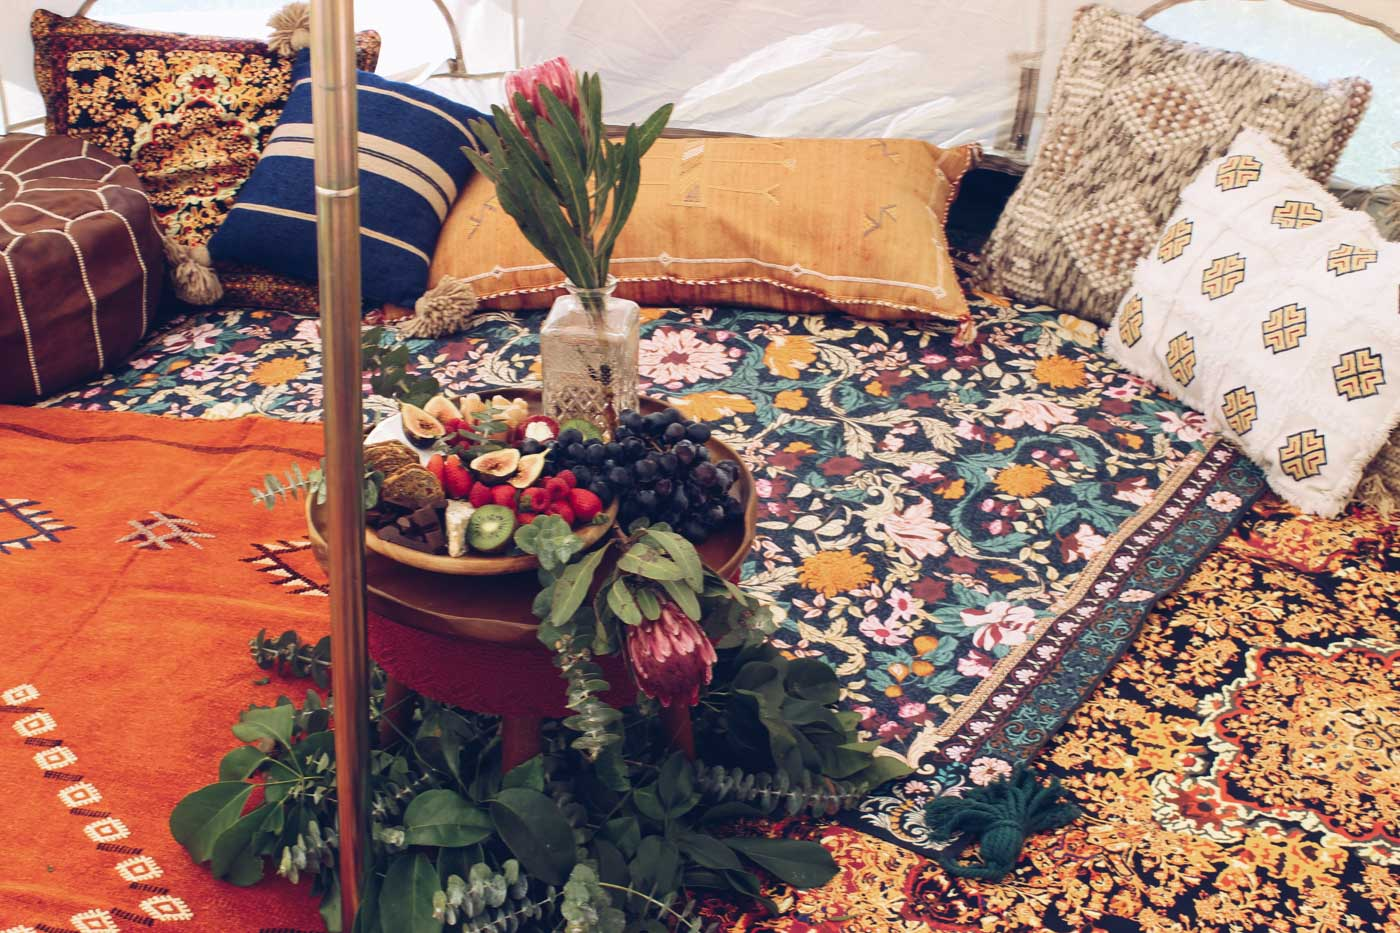 the_Collection_co_grazing_table_cairns_weddings_catering_grazing_platter_hire_pop_up_picnic_bell_tent_event_hire_styling-33-2.jpg